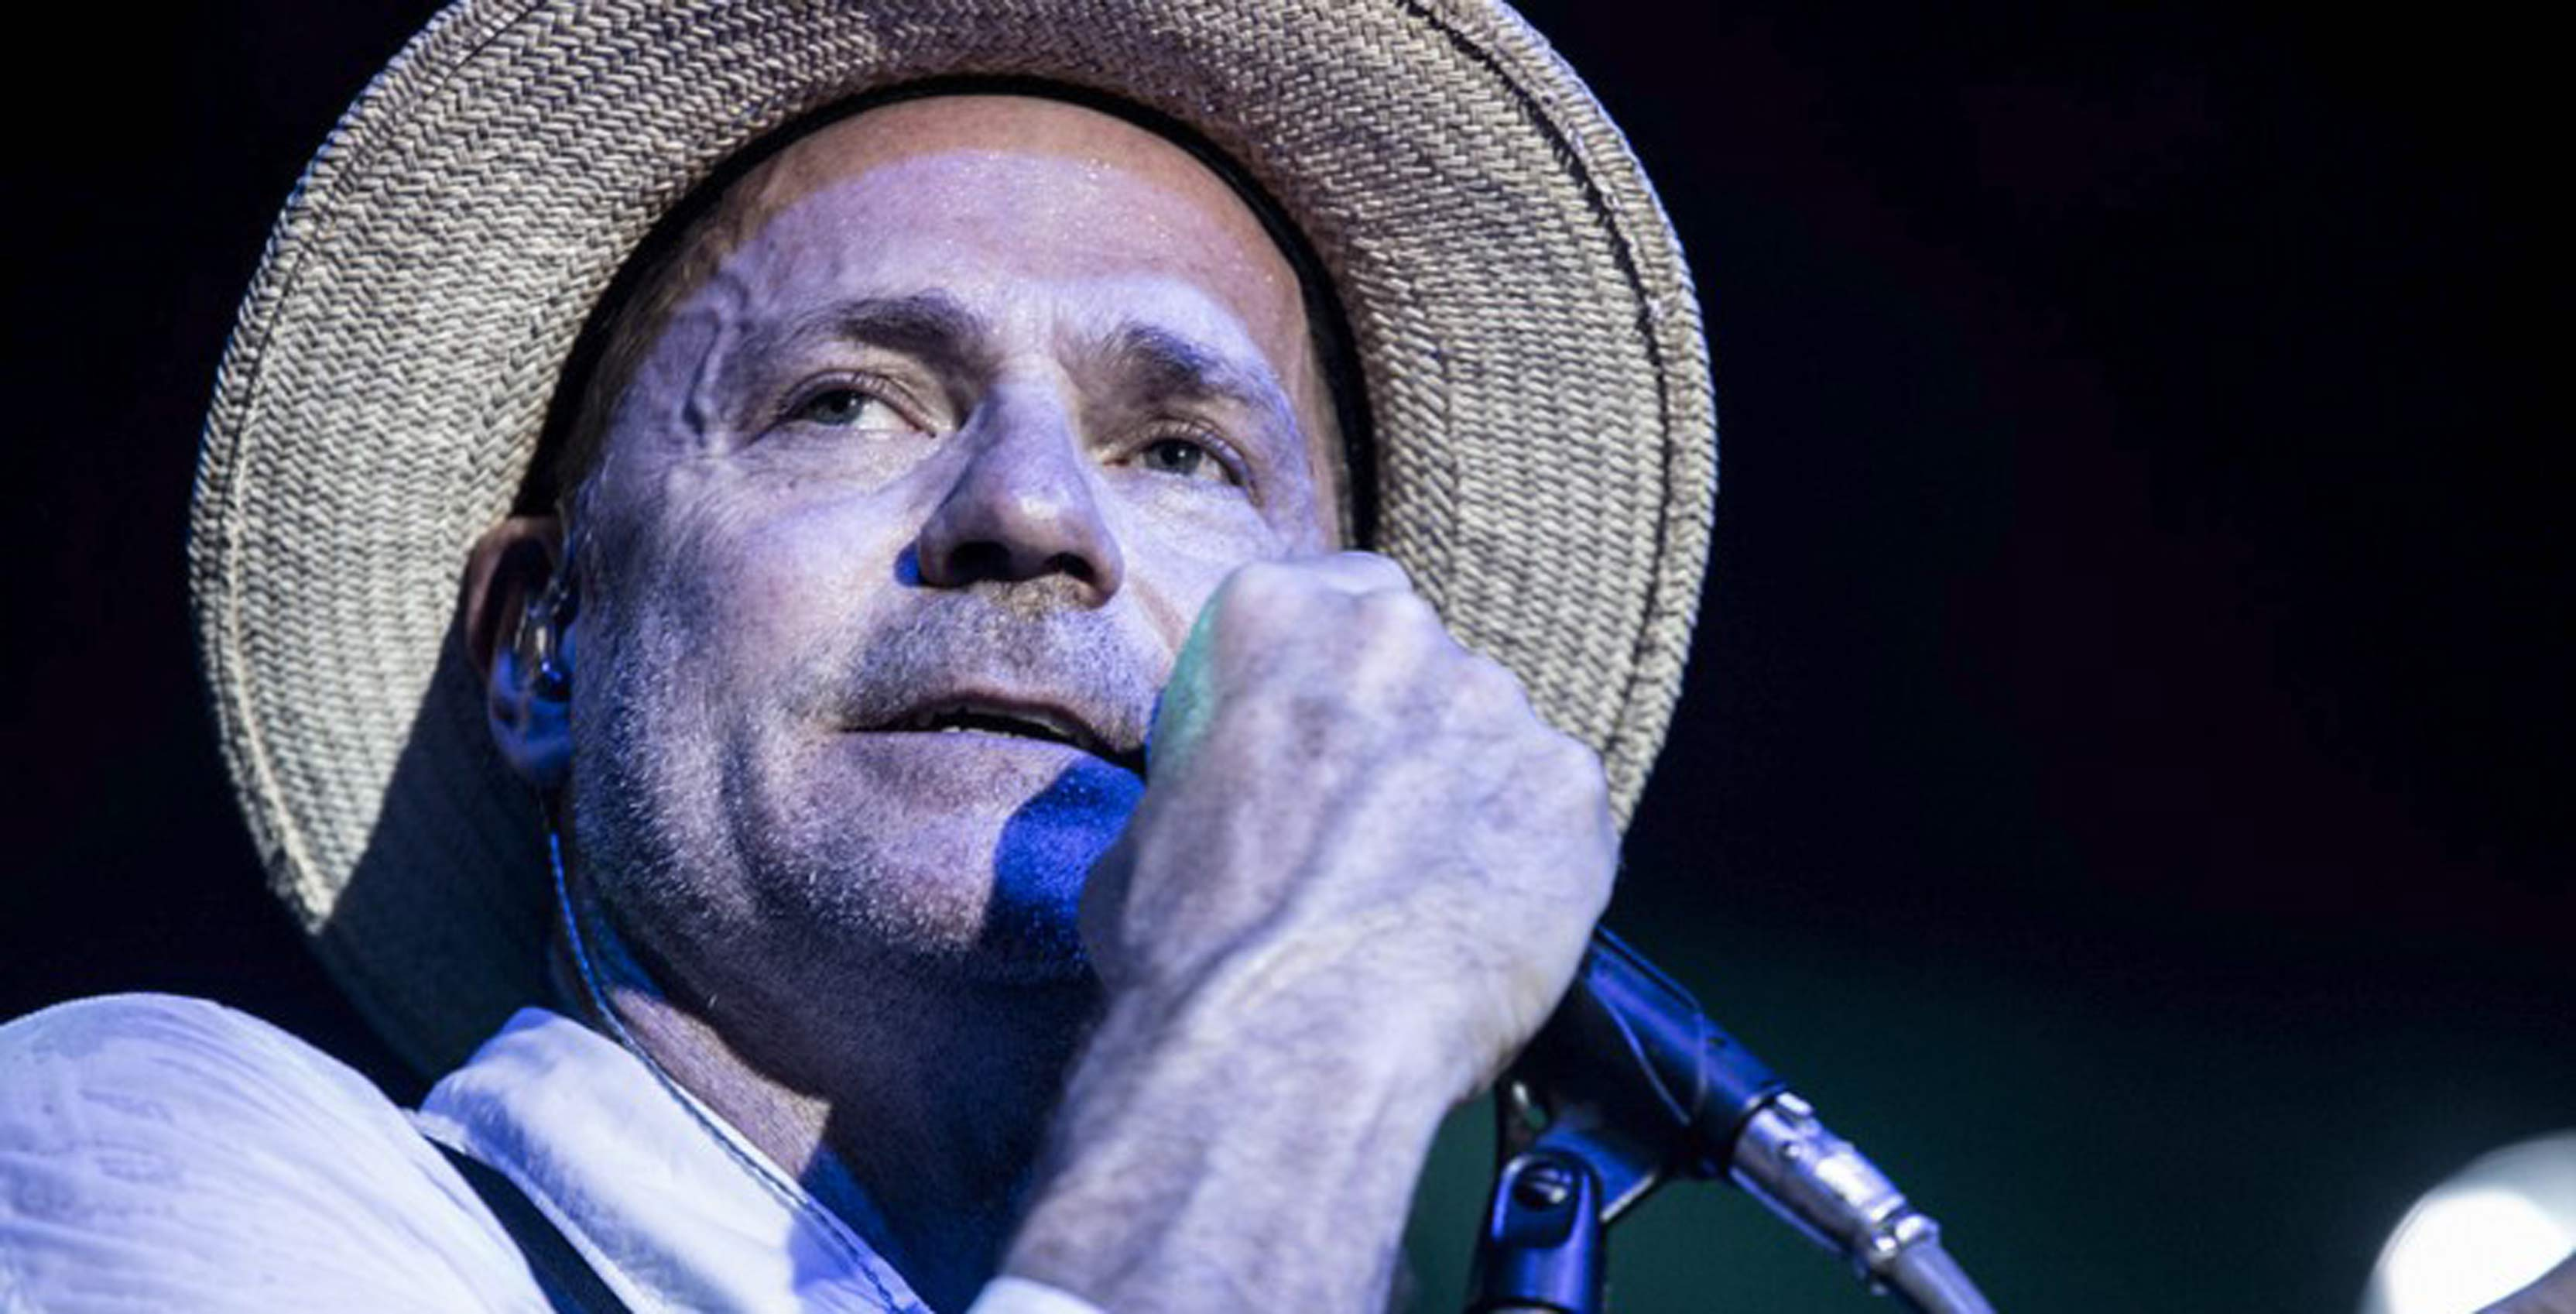 Photo of former Tragically Hip frontman Gord Downie